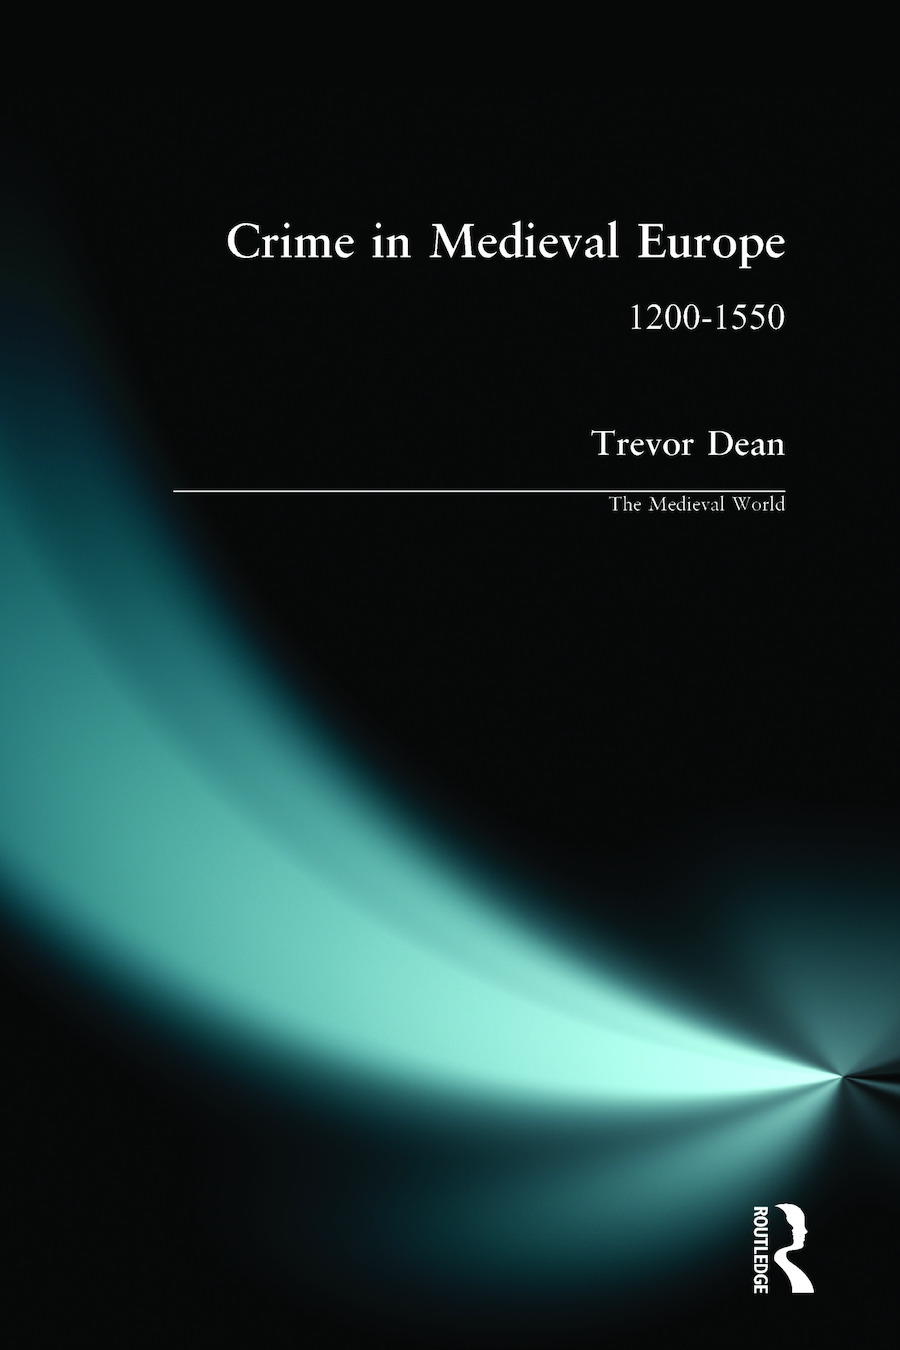 Crime in Medieval Europe: 1200-1550 book cover